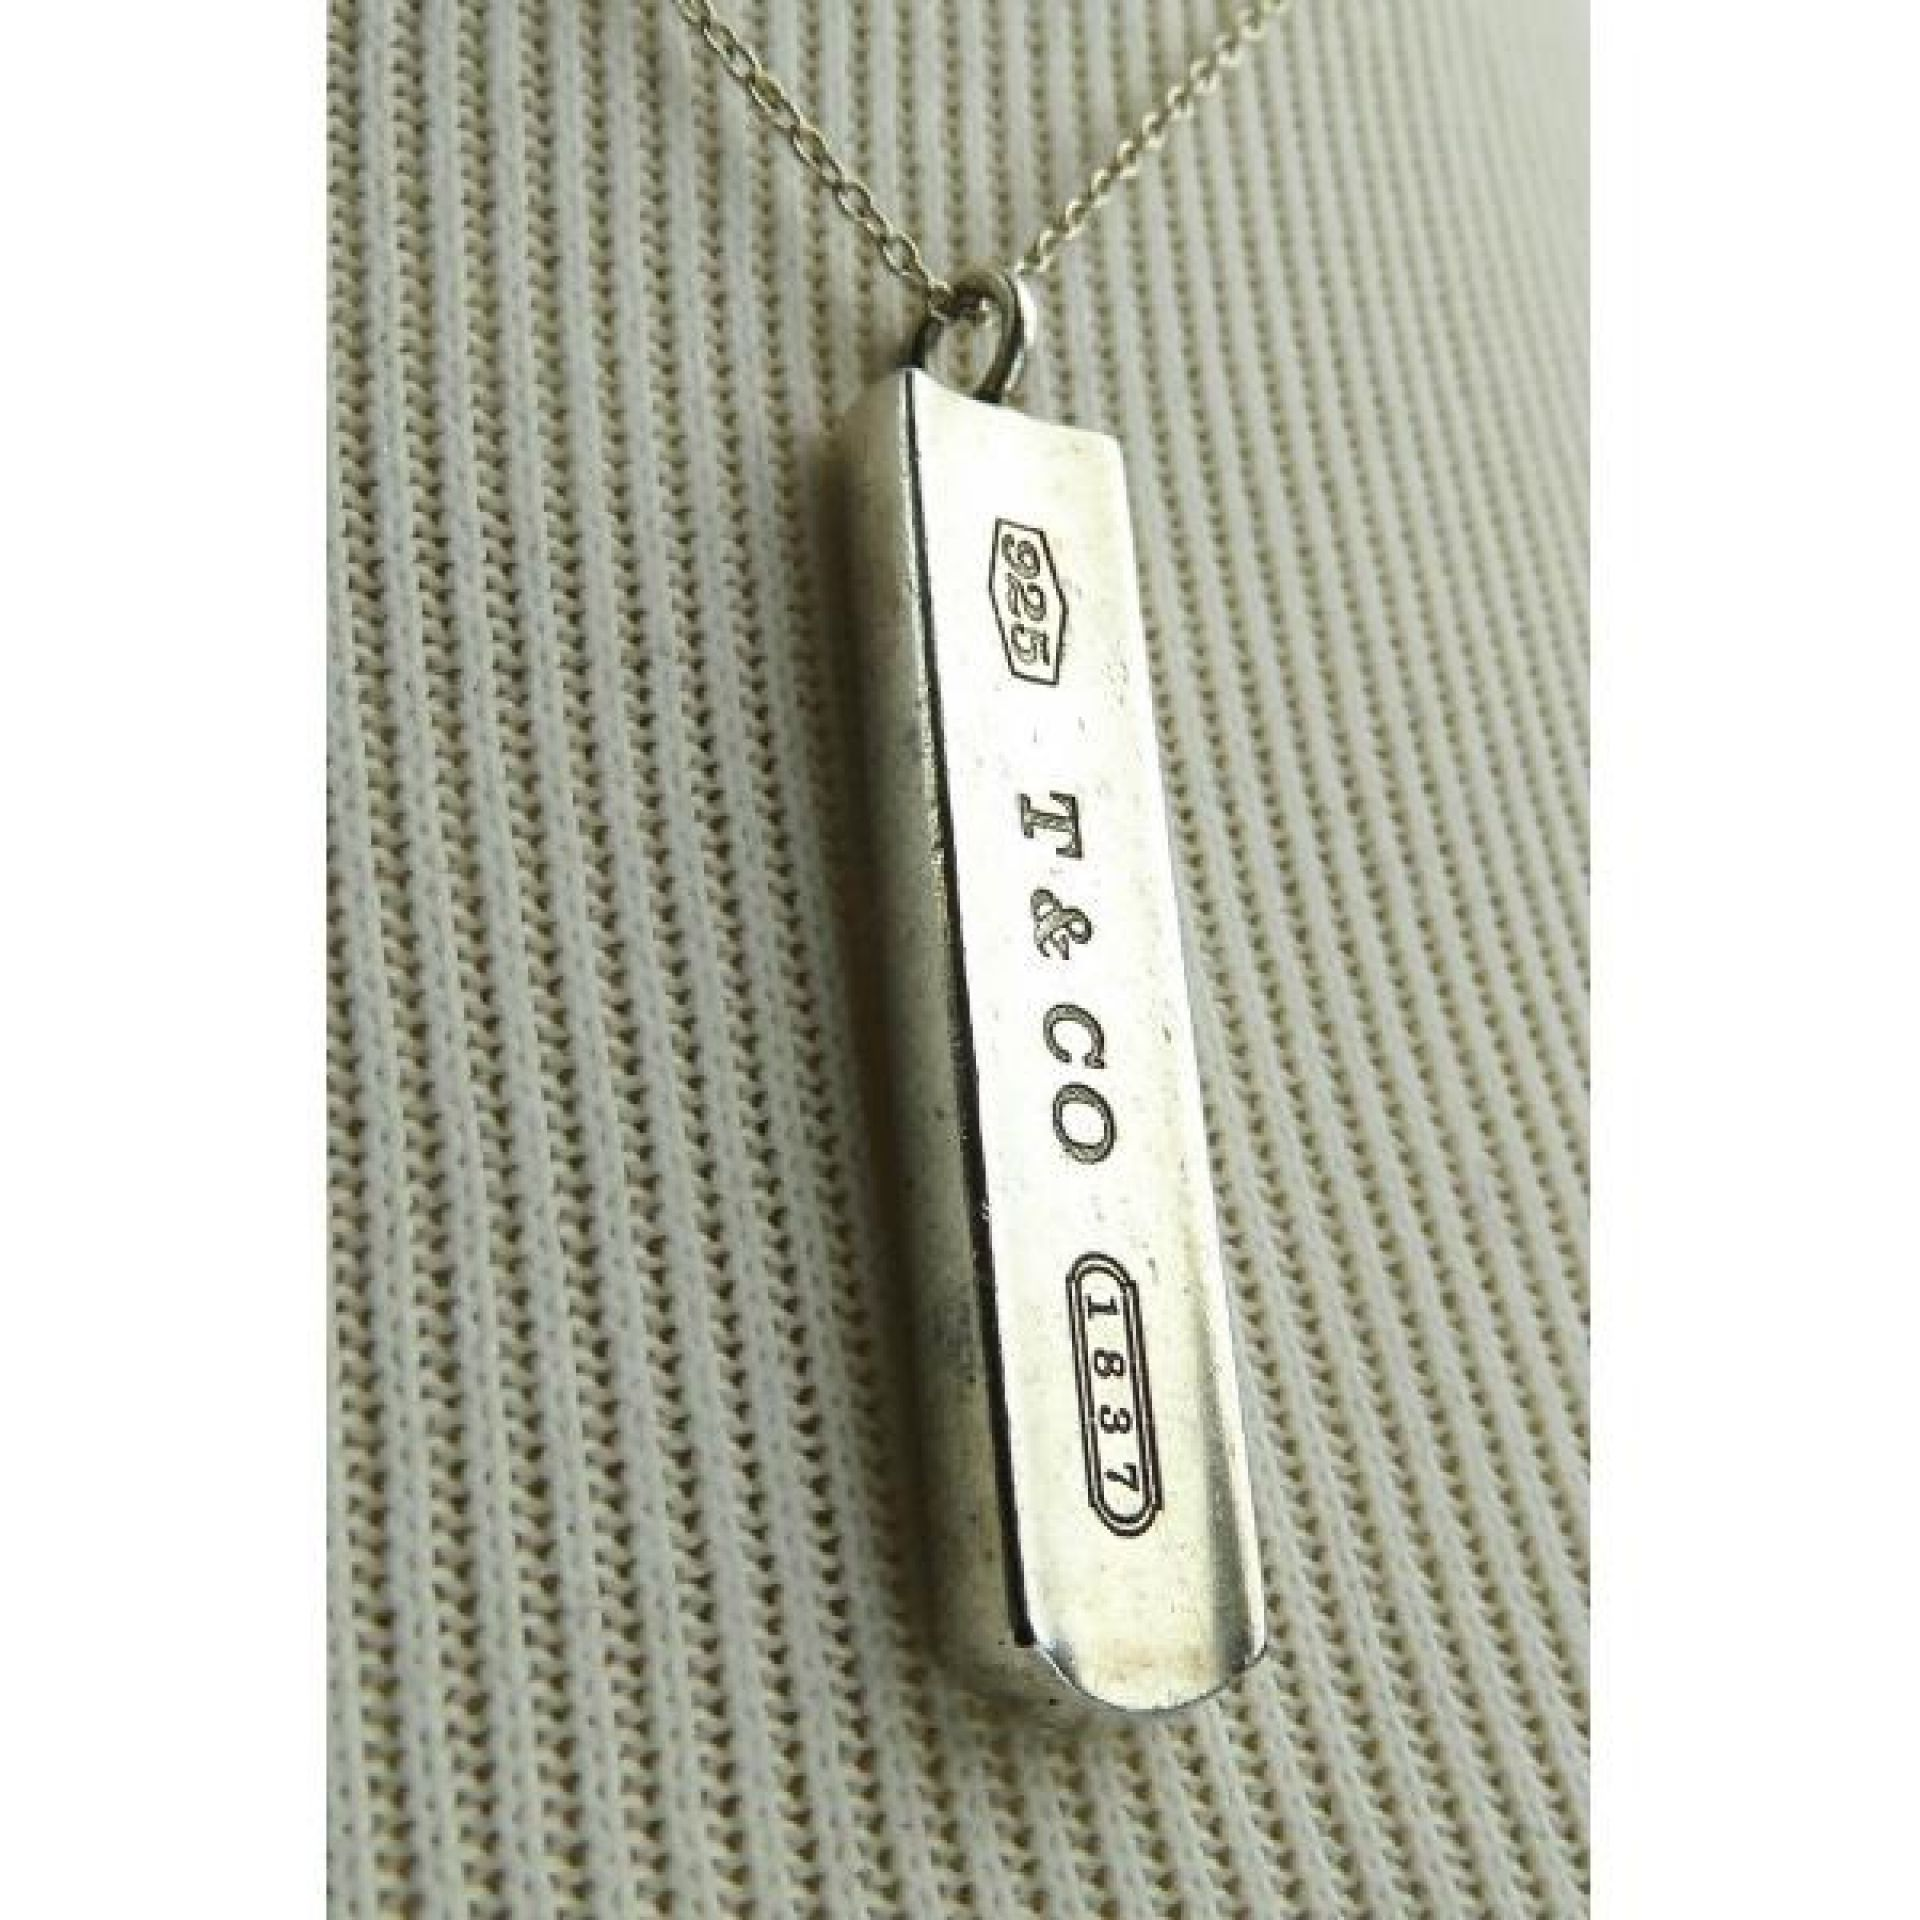 Tiffany & Co Sterling Silver 1837 Bar Pendant Necklace